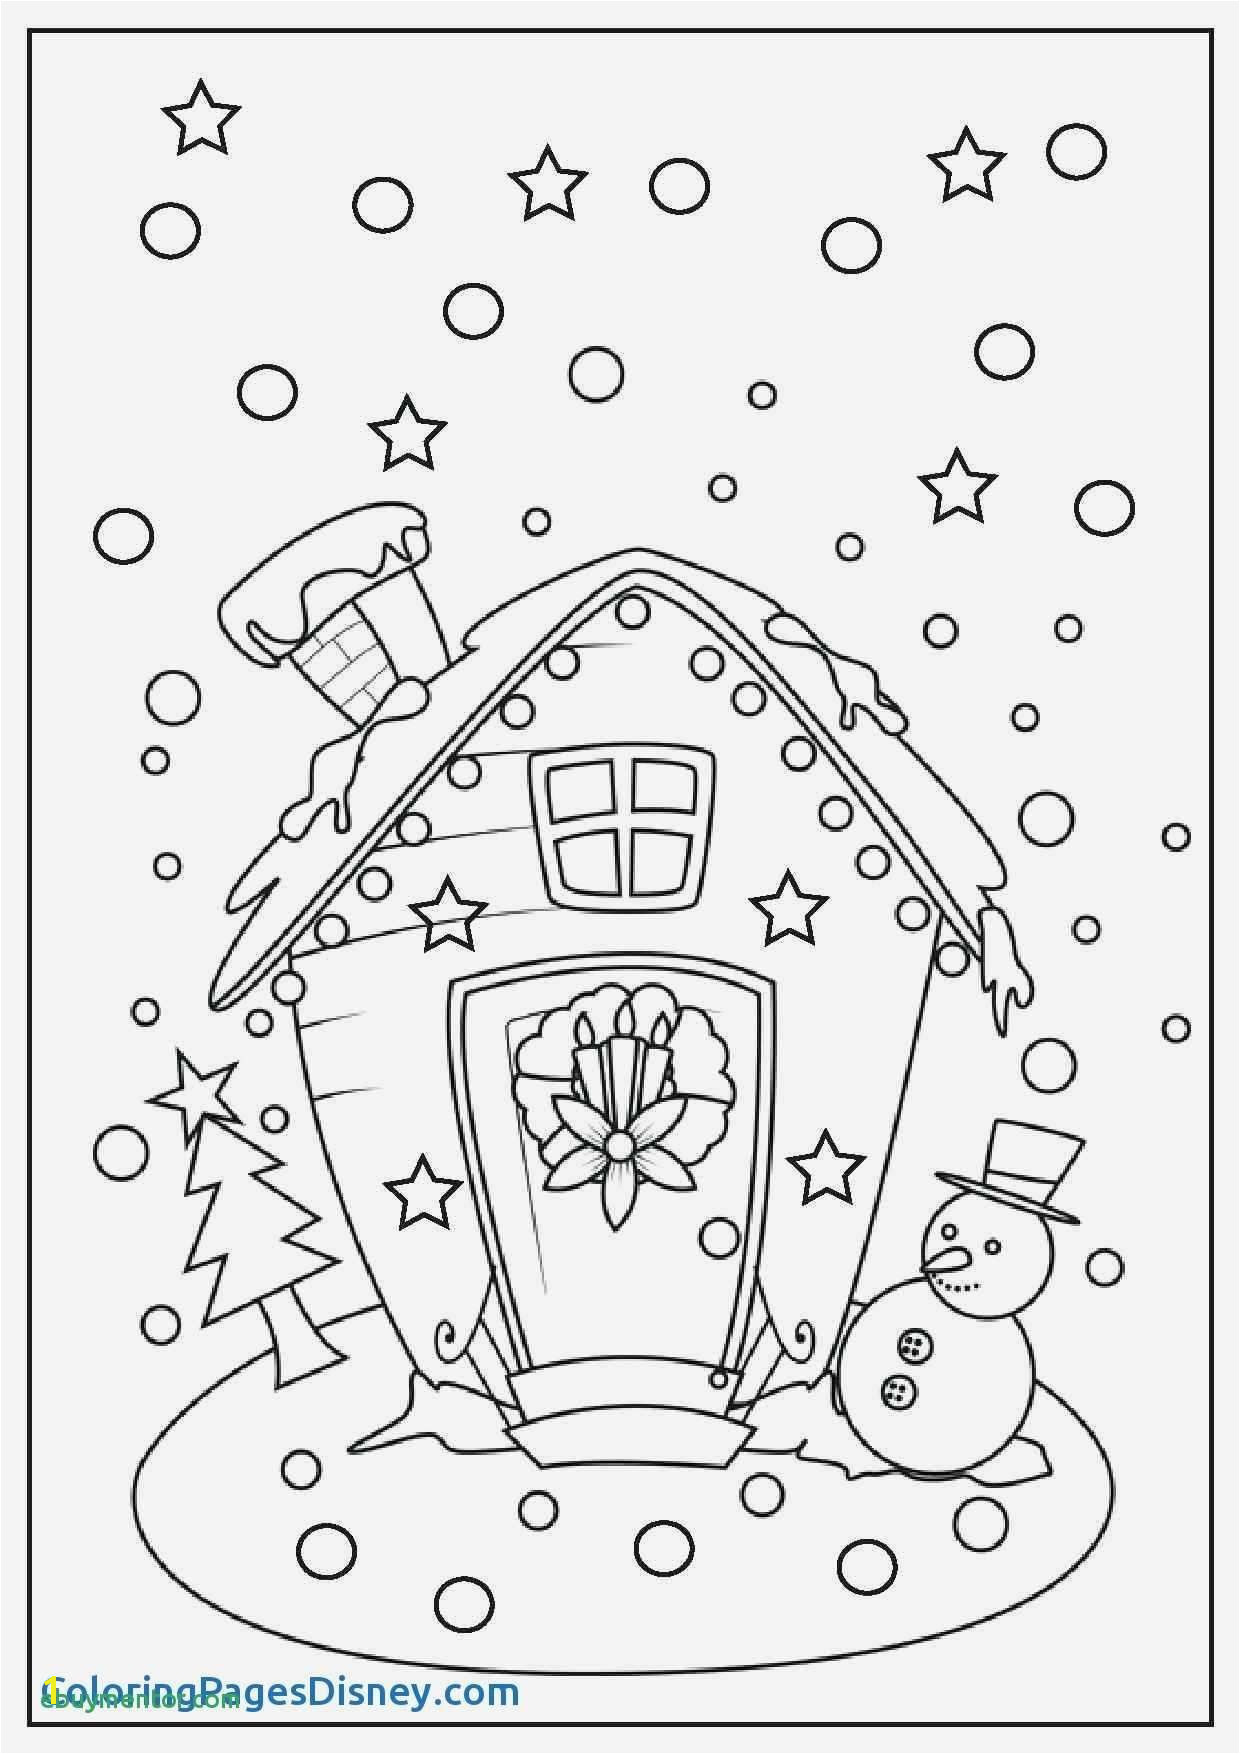 Colouring Worksheets Printable preschool Christmas Coloring Sheets Kindergarten Cool Coloring Printables 0d